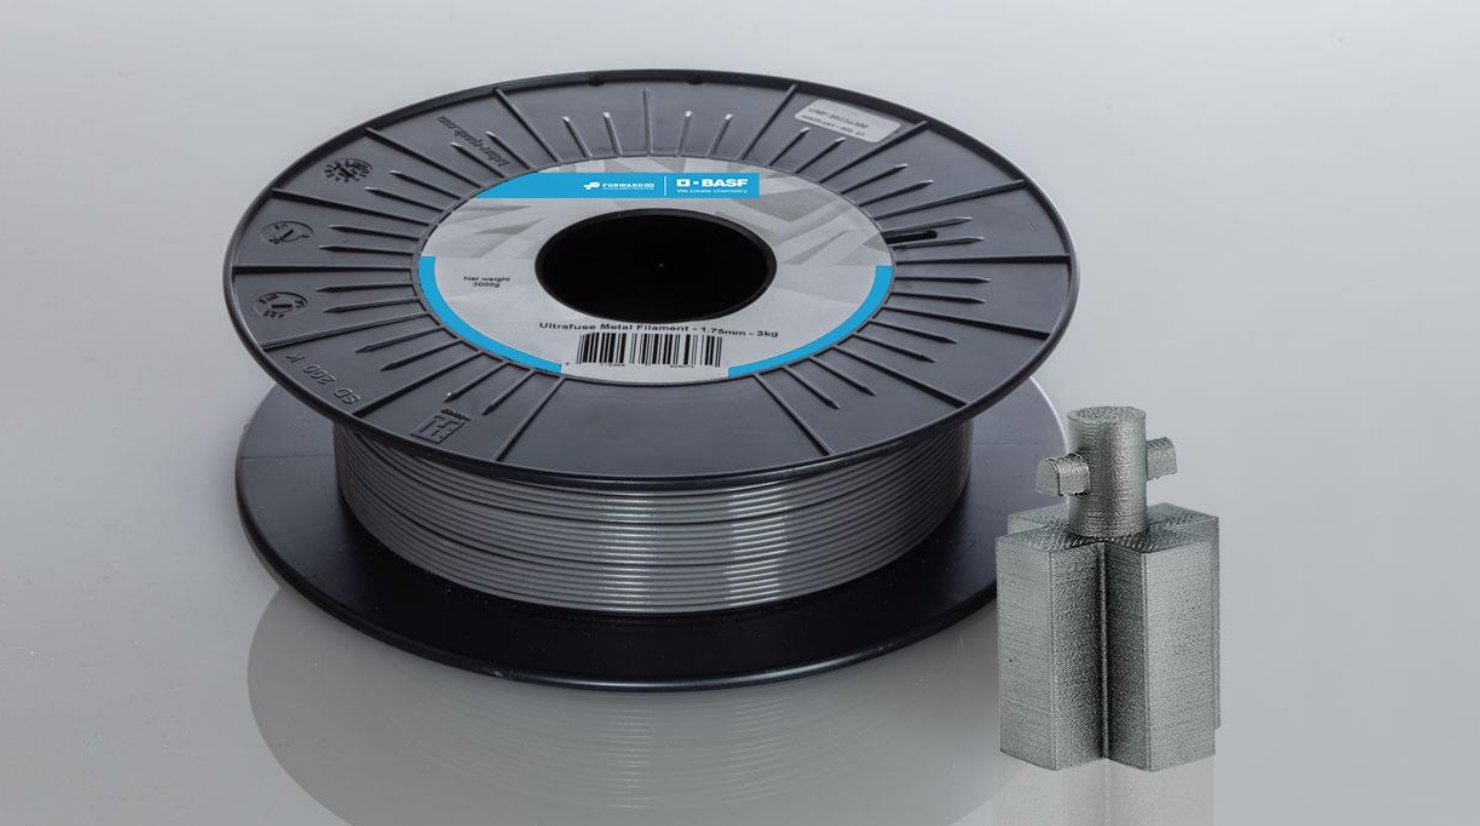 Ultrafuse 17-4 PH filament. Photo via BASF.